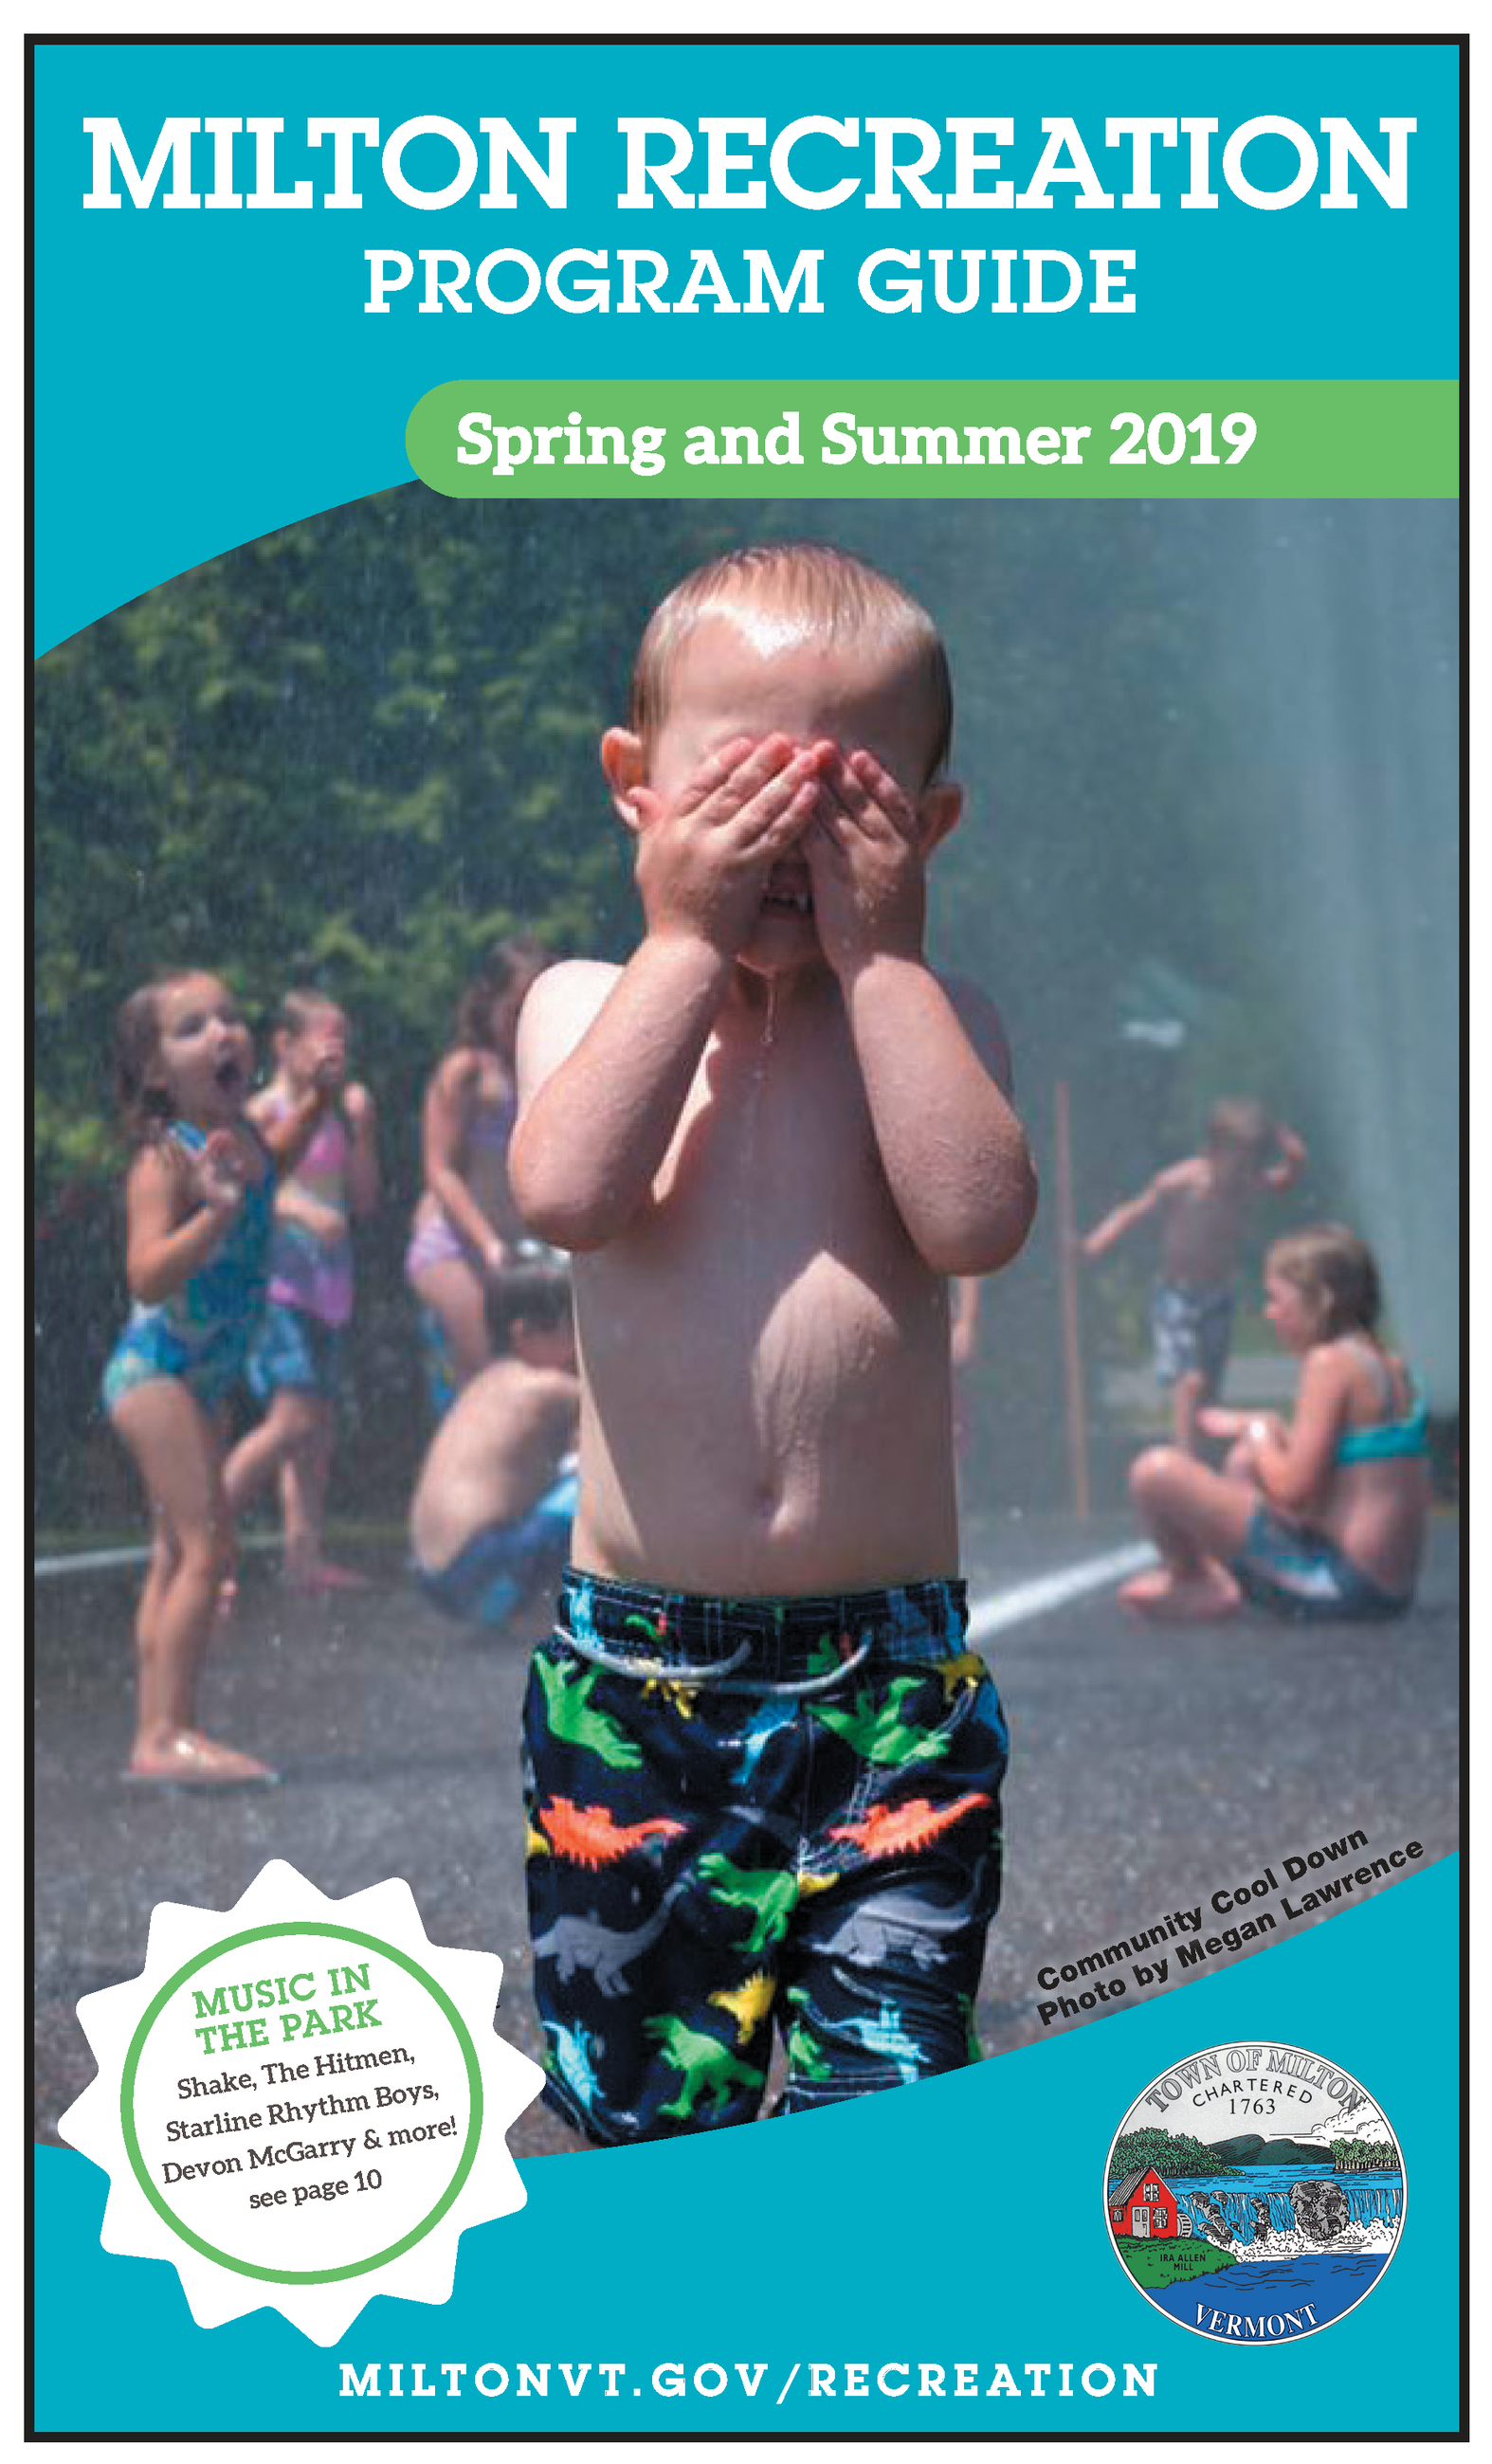 Program Guide Cover with Little Boy Playing in Water